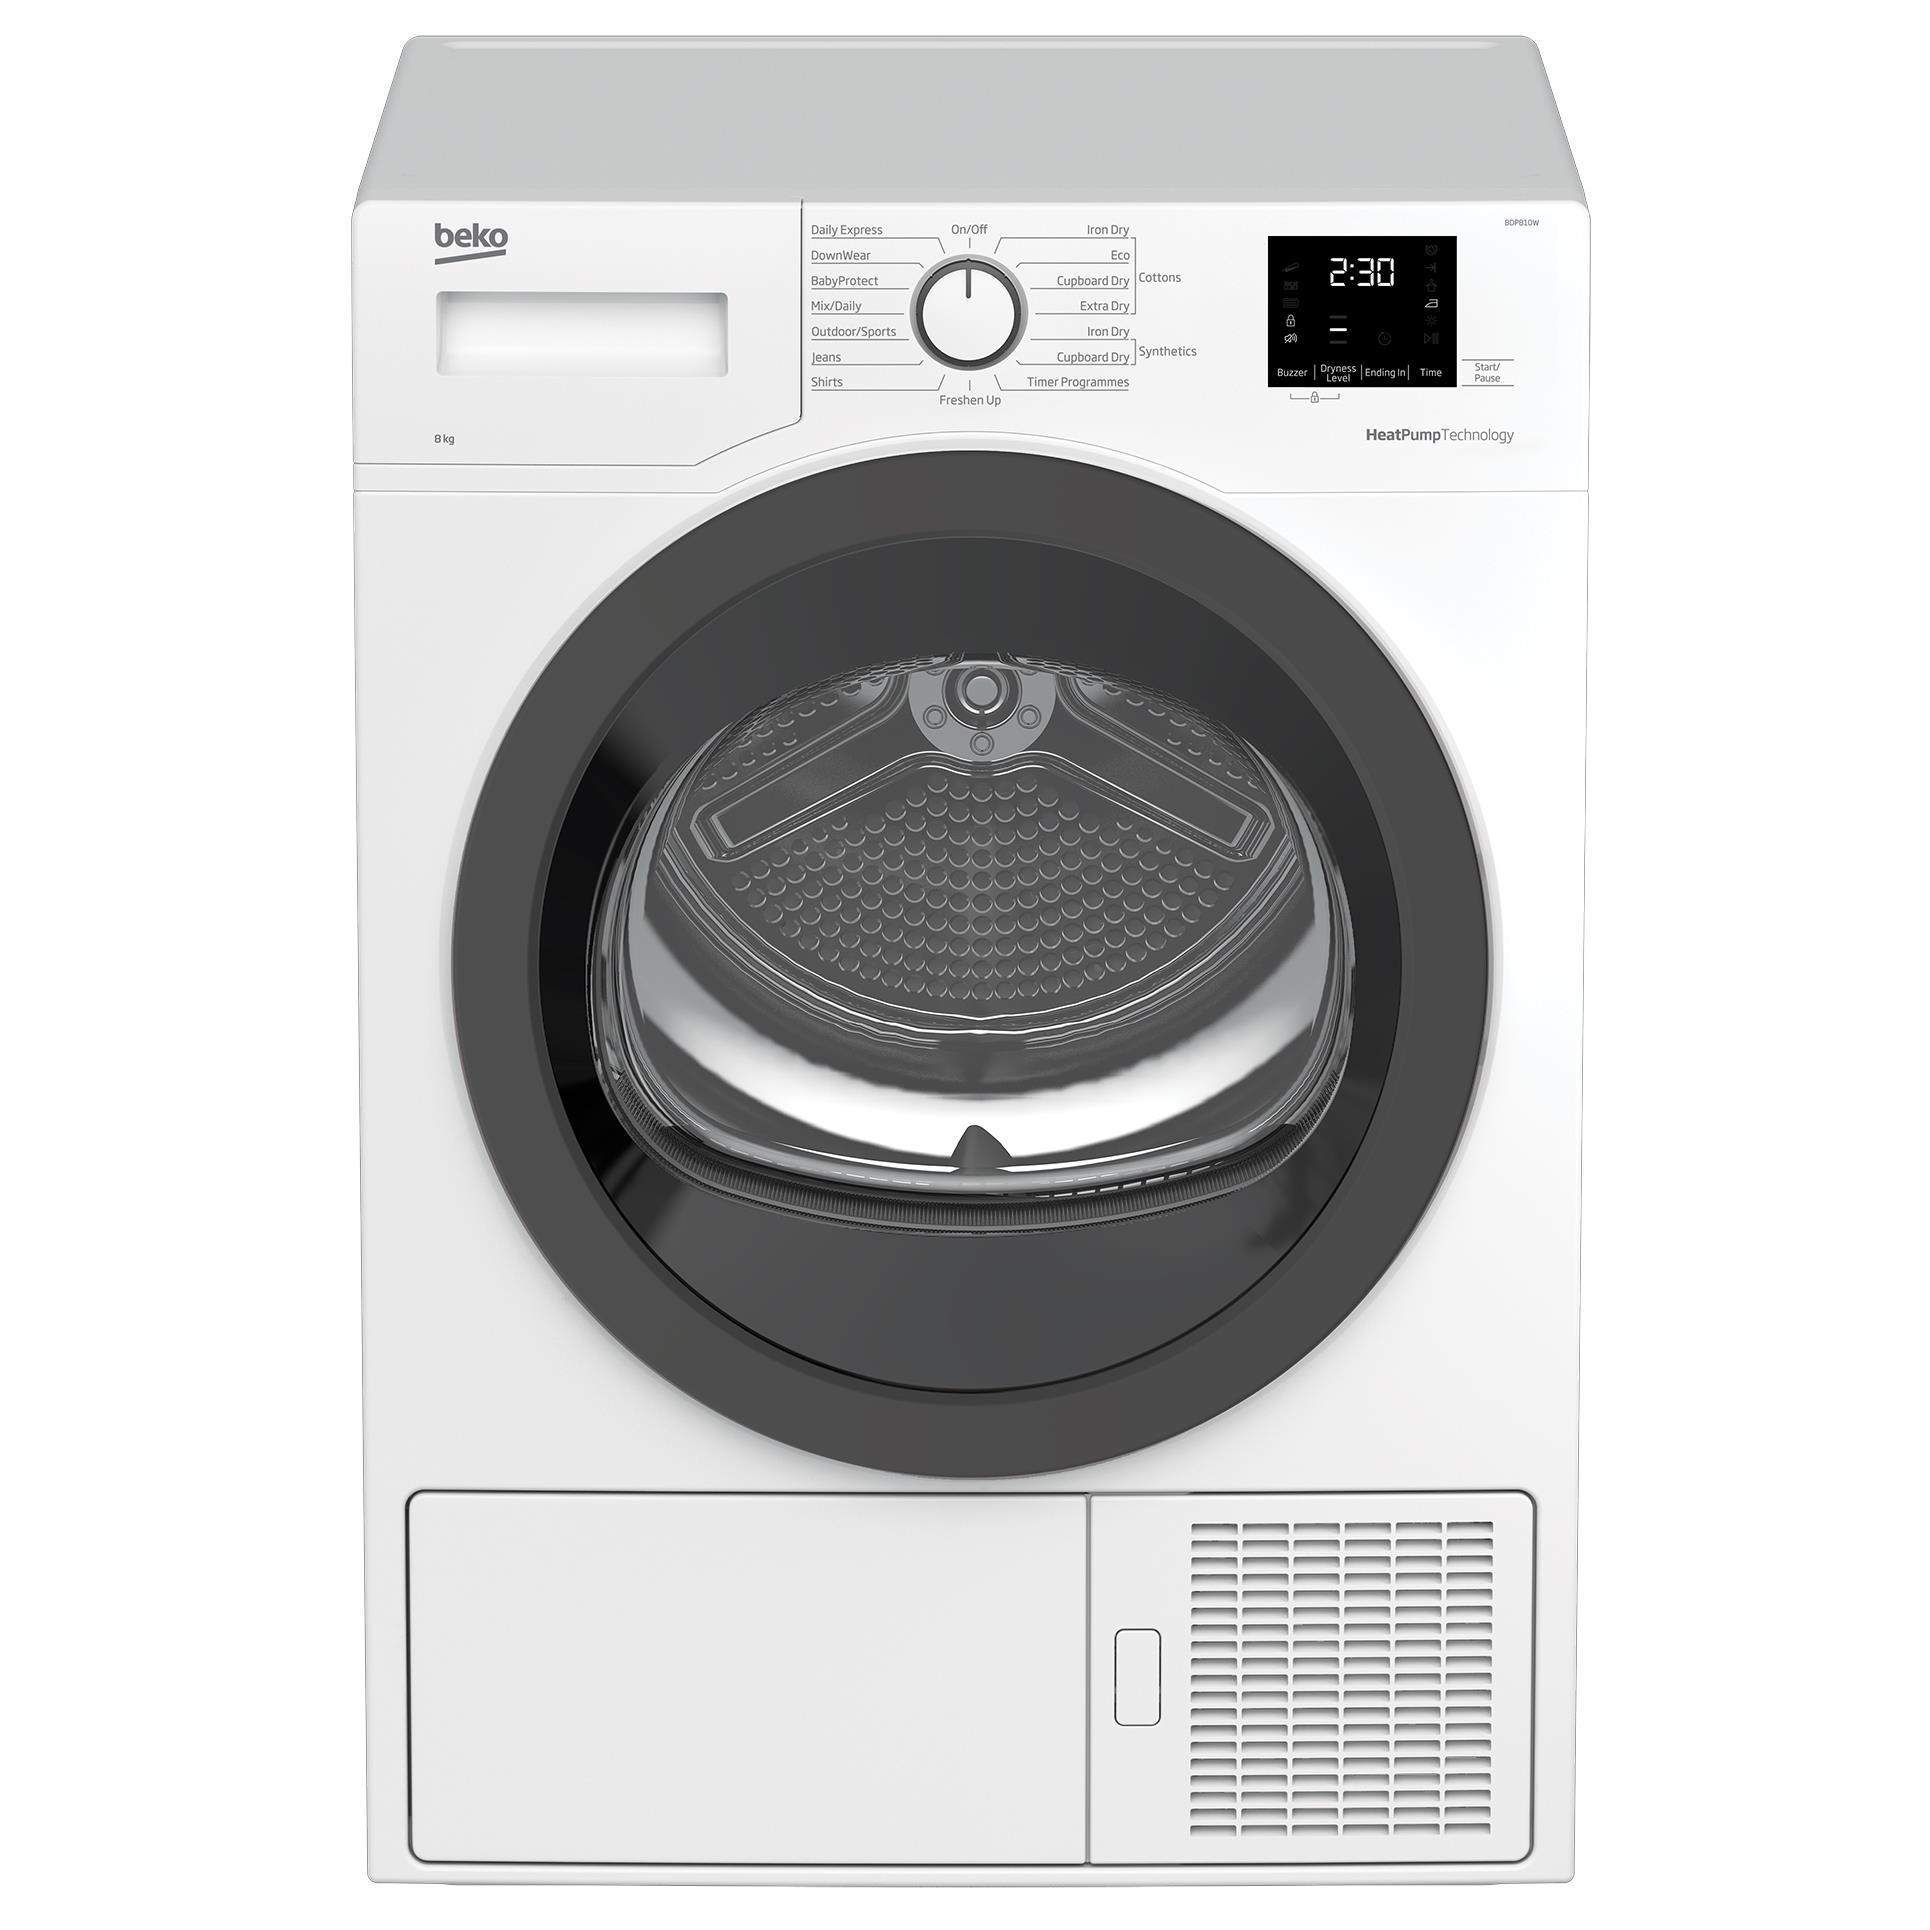 Beko BDP810W 8kg Sensor Controlled Heat Pump Dryer